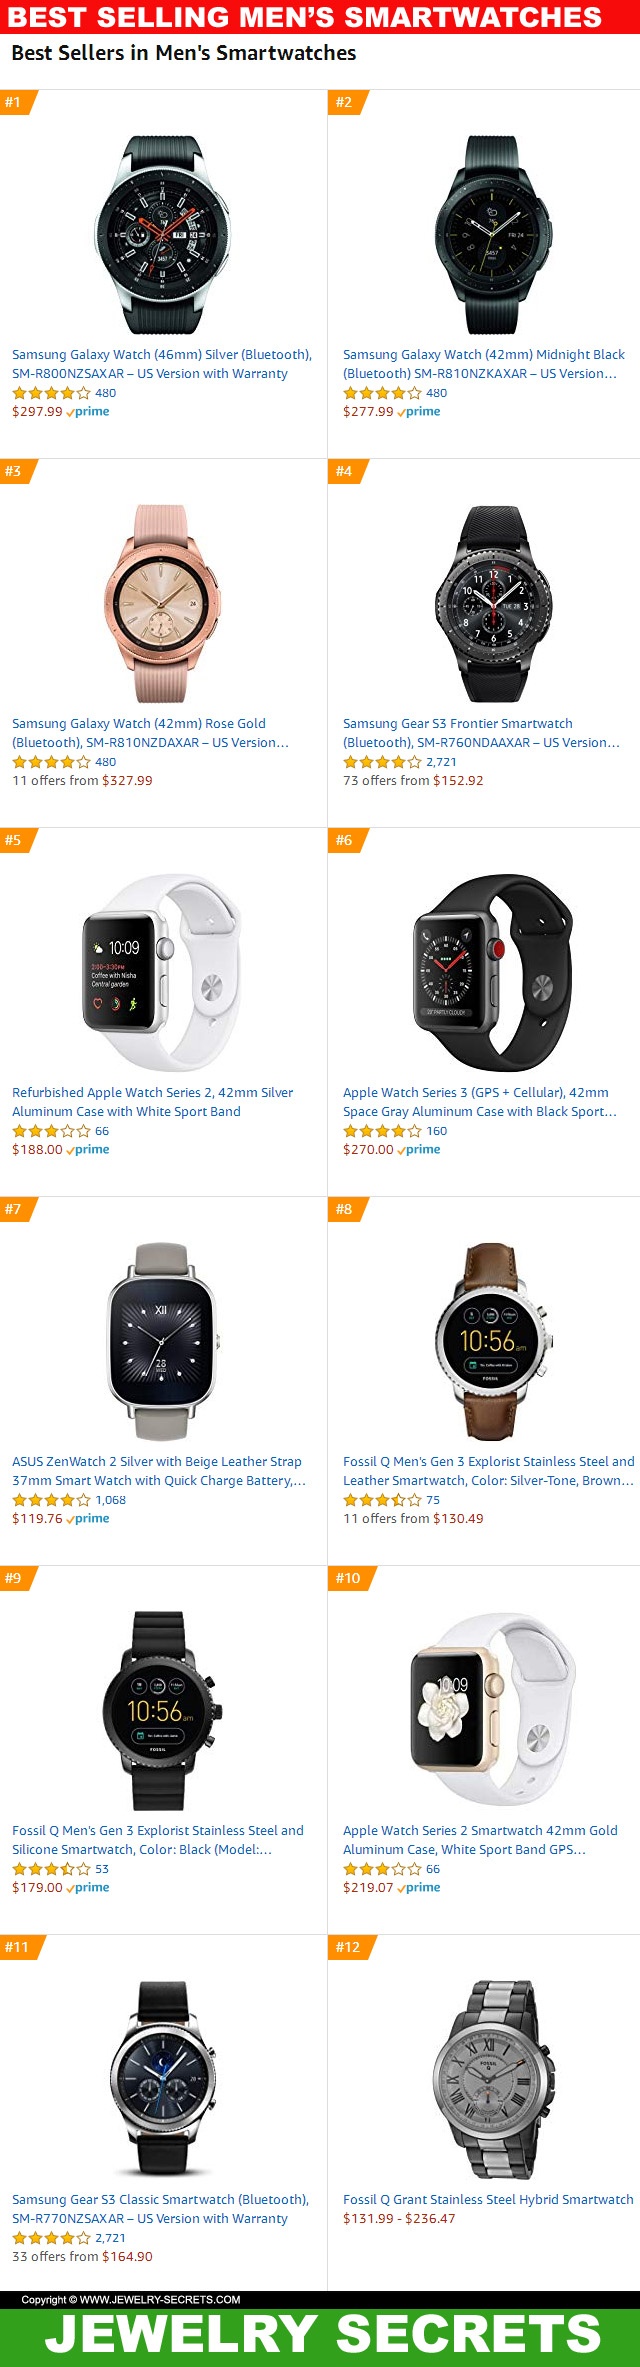 Top 12 Best Selling Mens Smartwatches